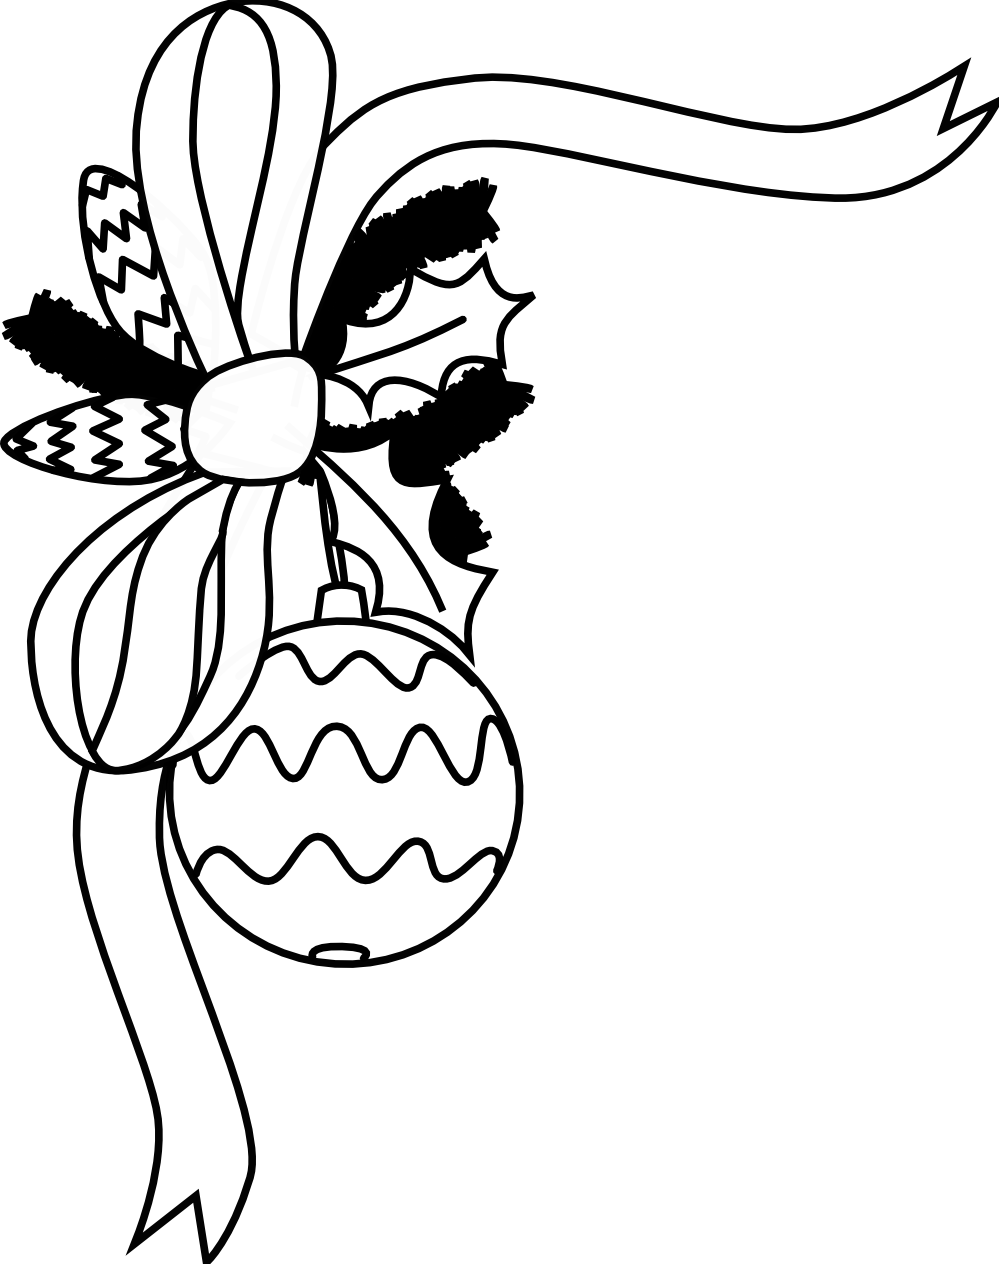 Christmas ornament  black and white christmas ornament clipart black and white free 3